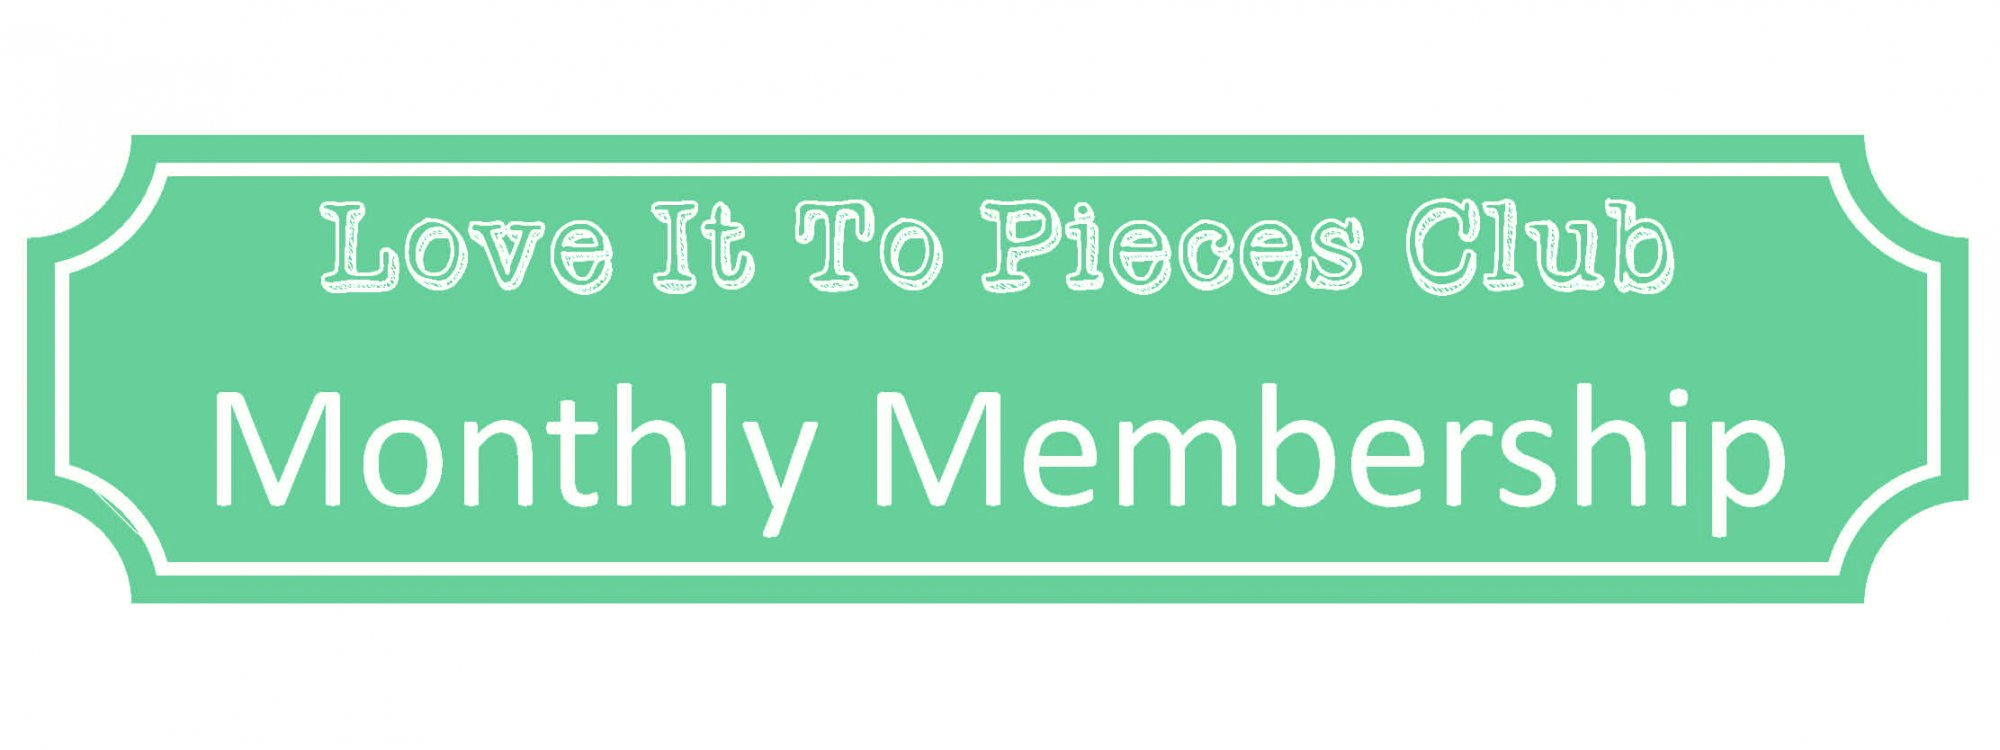 The LITP Club Payment Option: Monthly